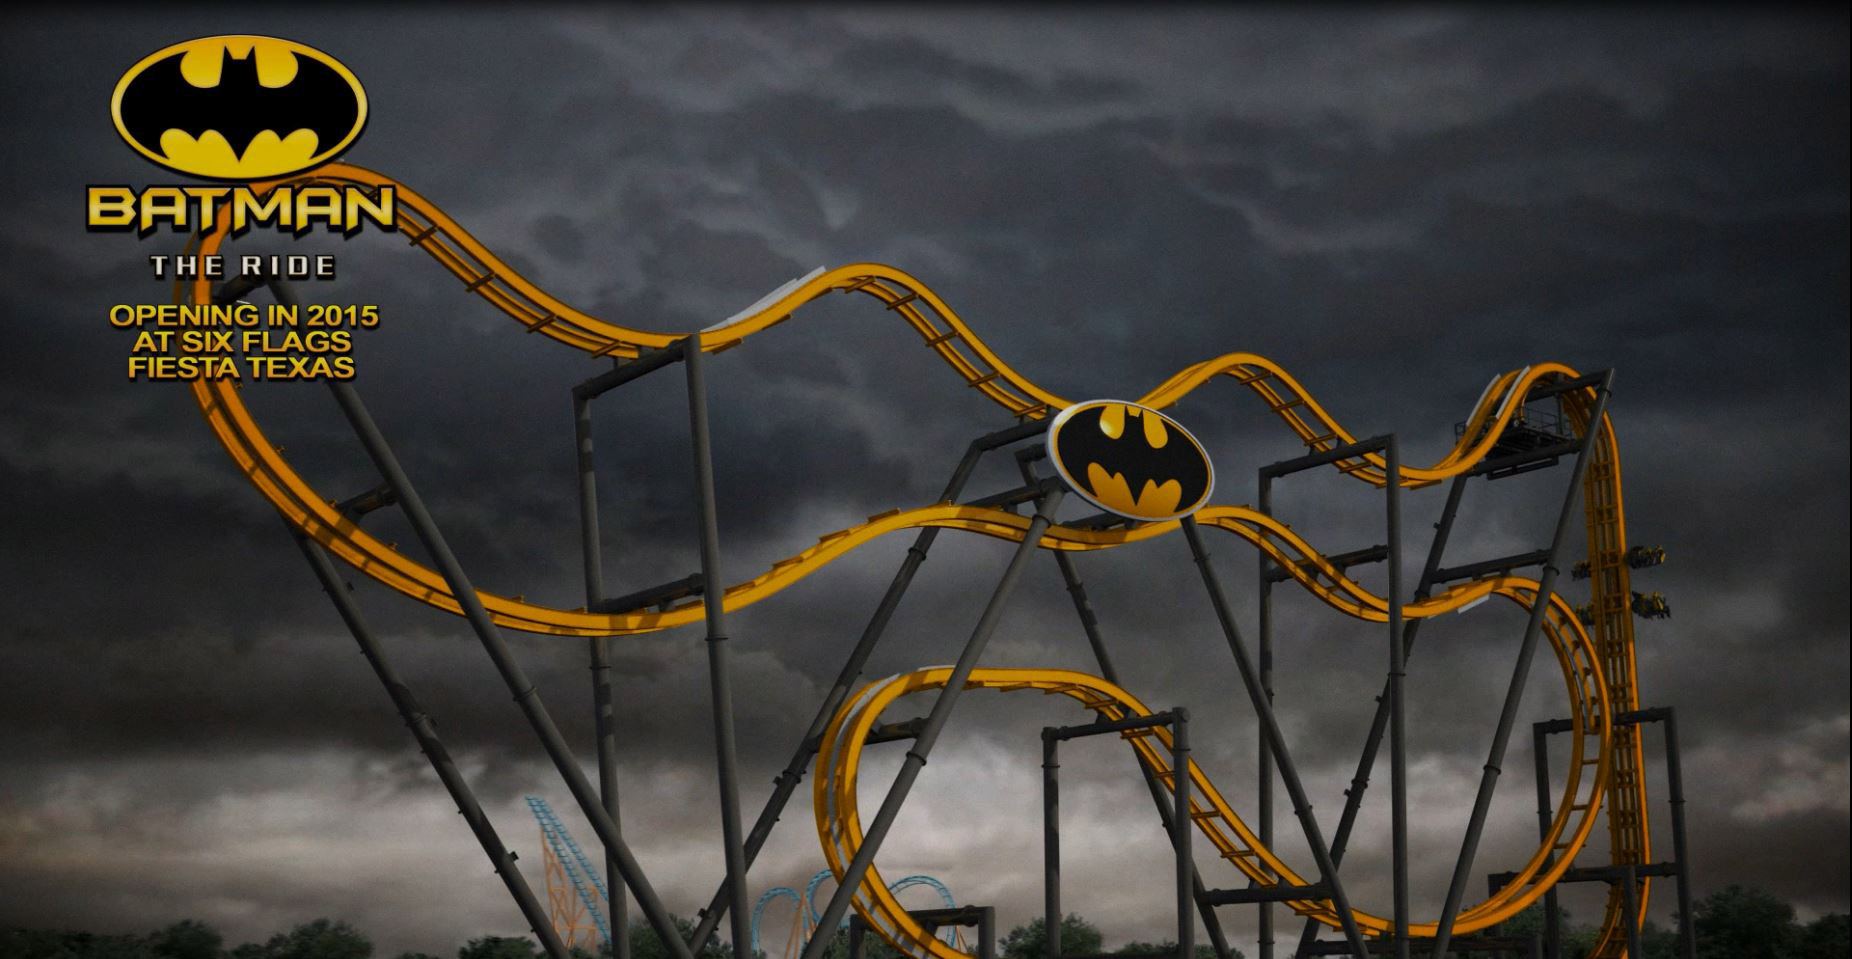 Batman the ride coming to six flags in summer 2015 4d wing coaster